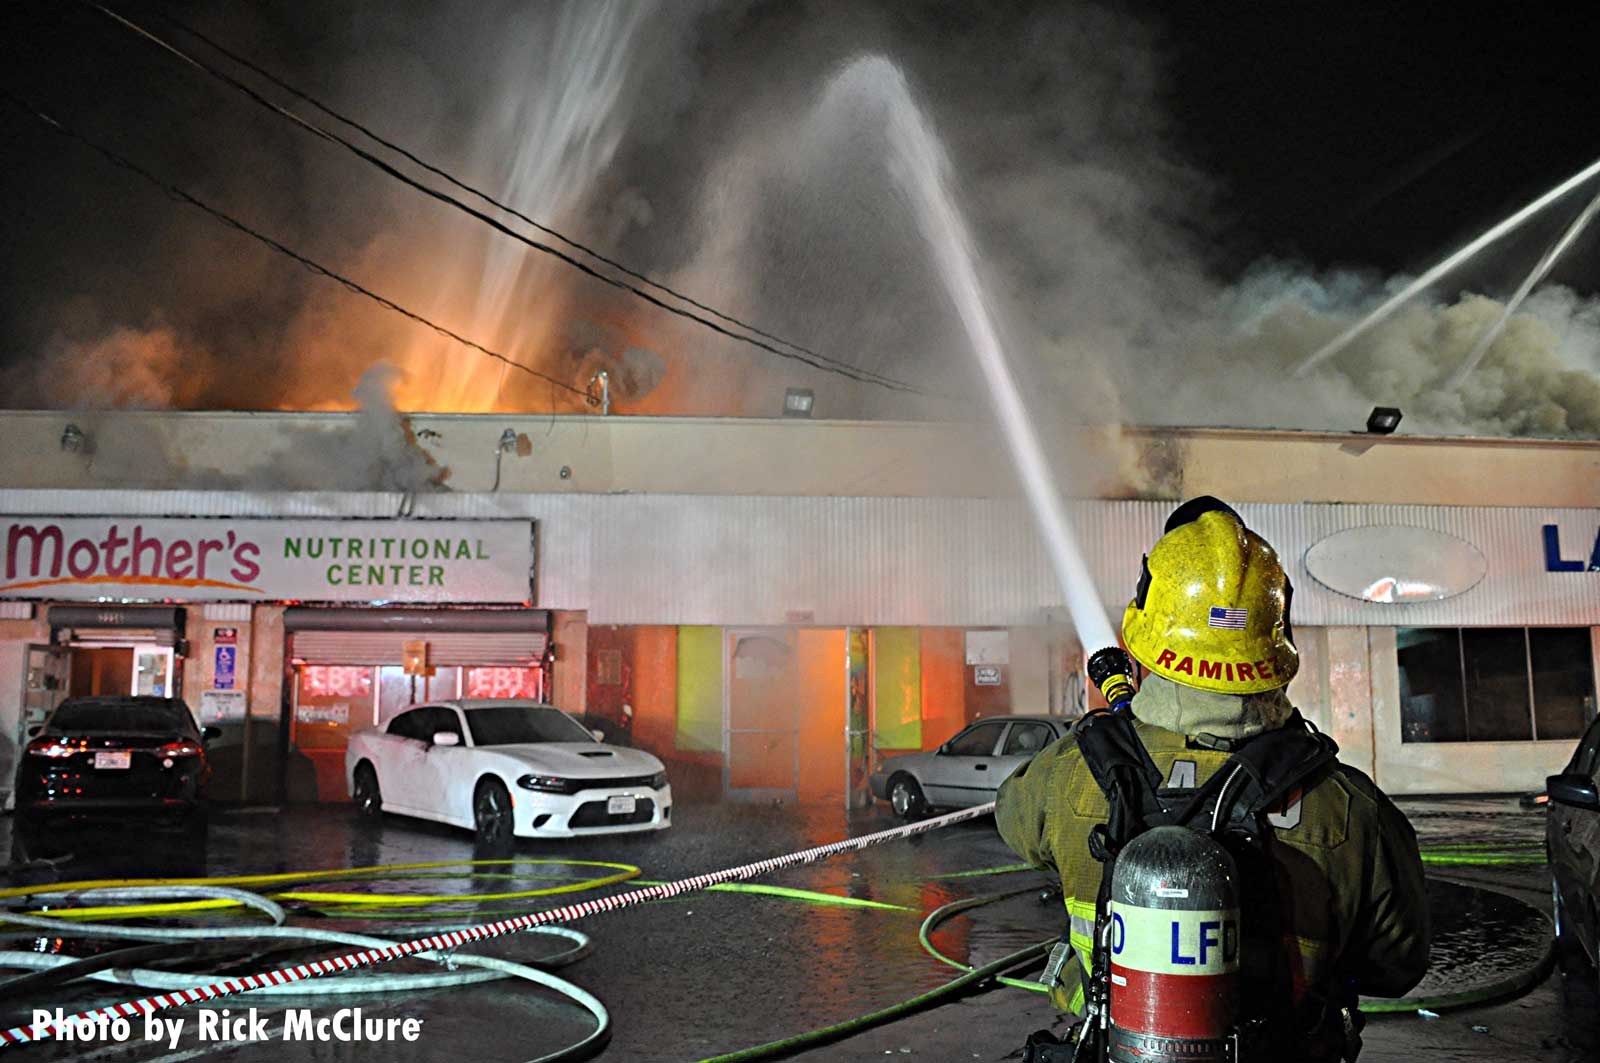 A City of Los Angeles firefighter with a hose putting water on the flames shooting from a building